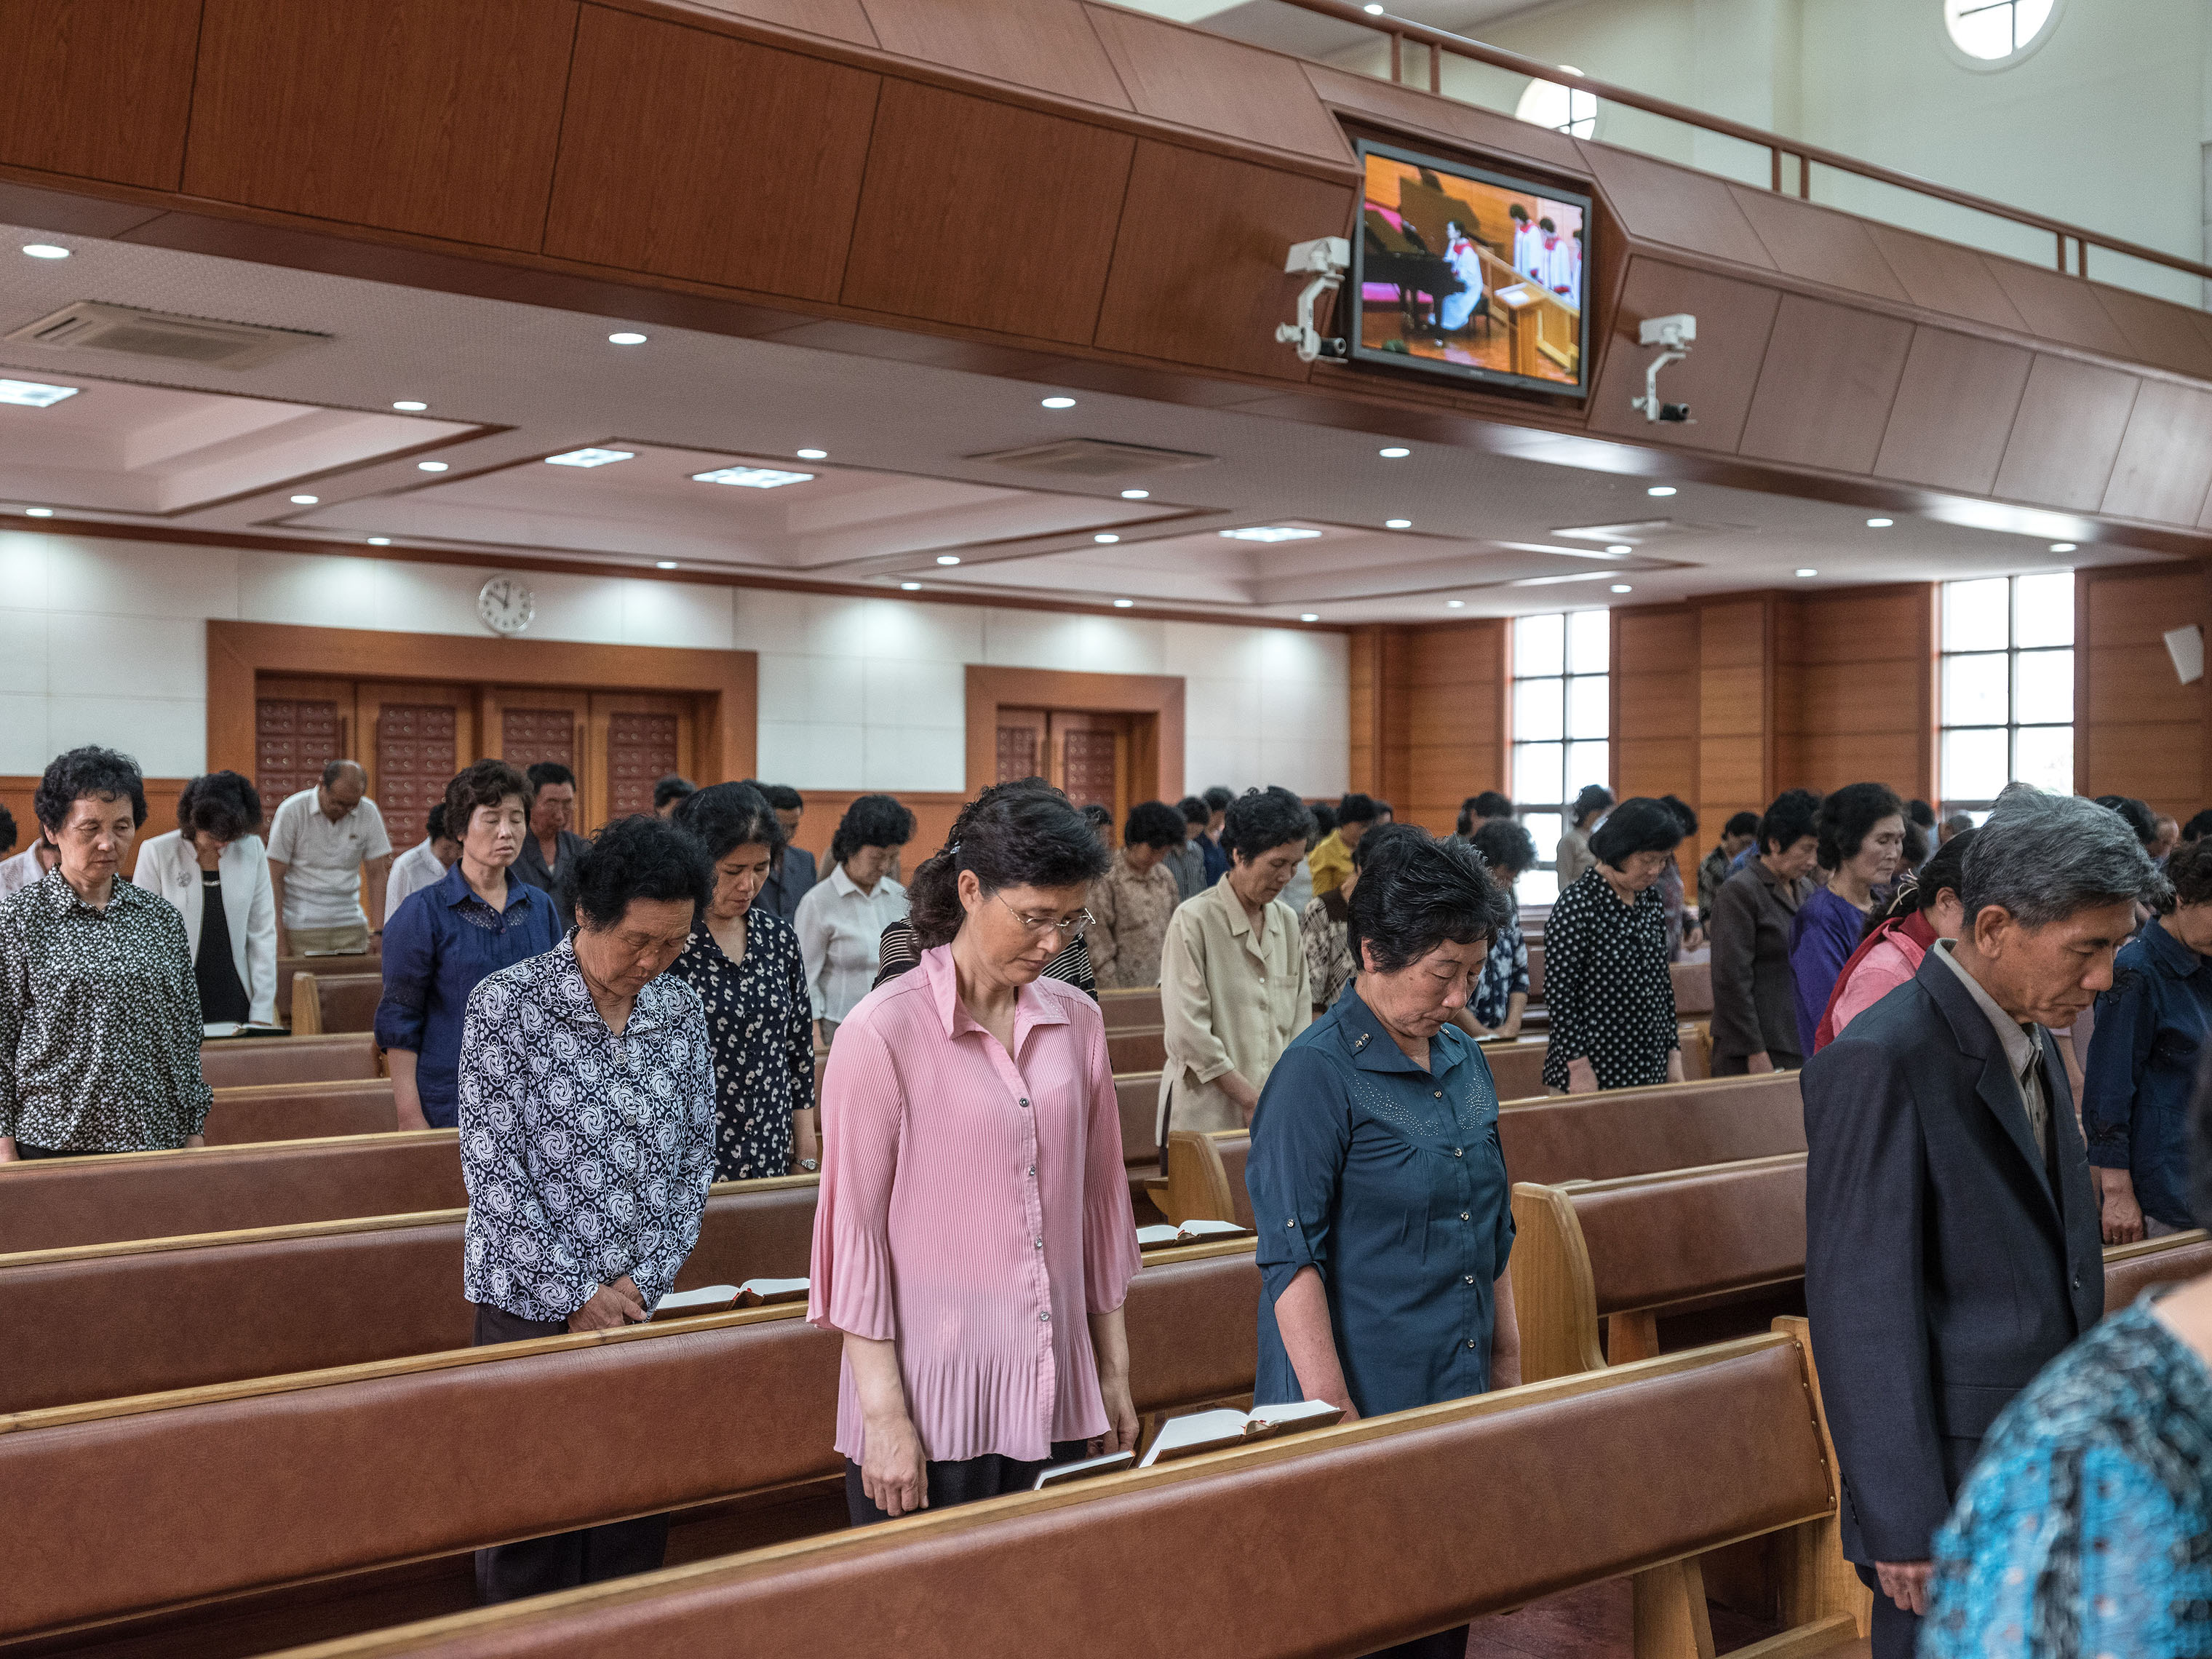 Worshipers pray at Bongsu Church in Pyongyang.